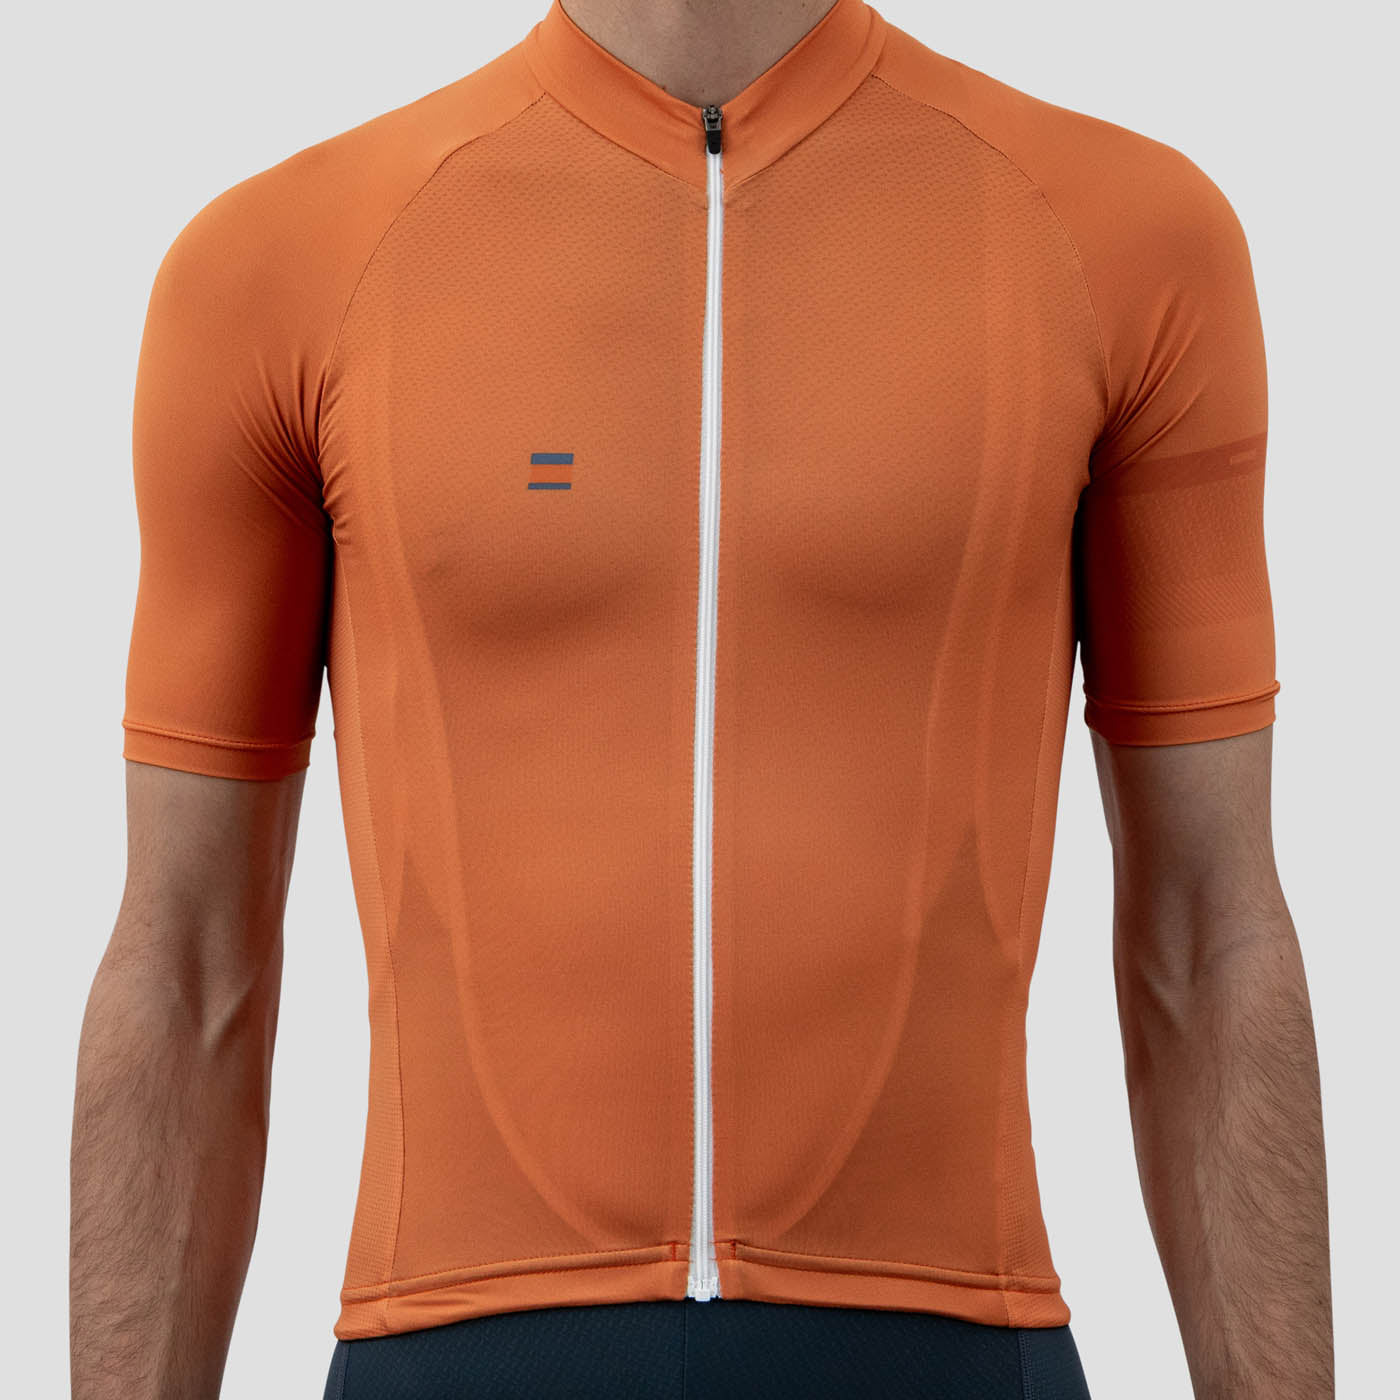 Coastal Orange - House Jersey